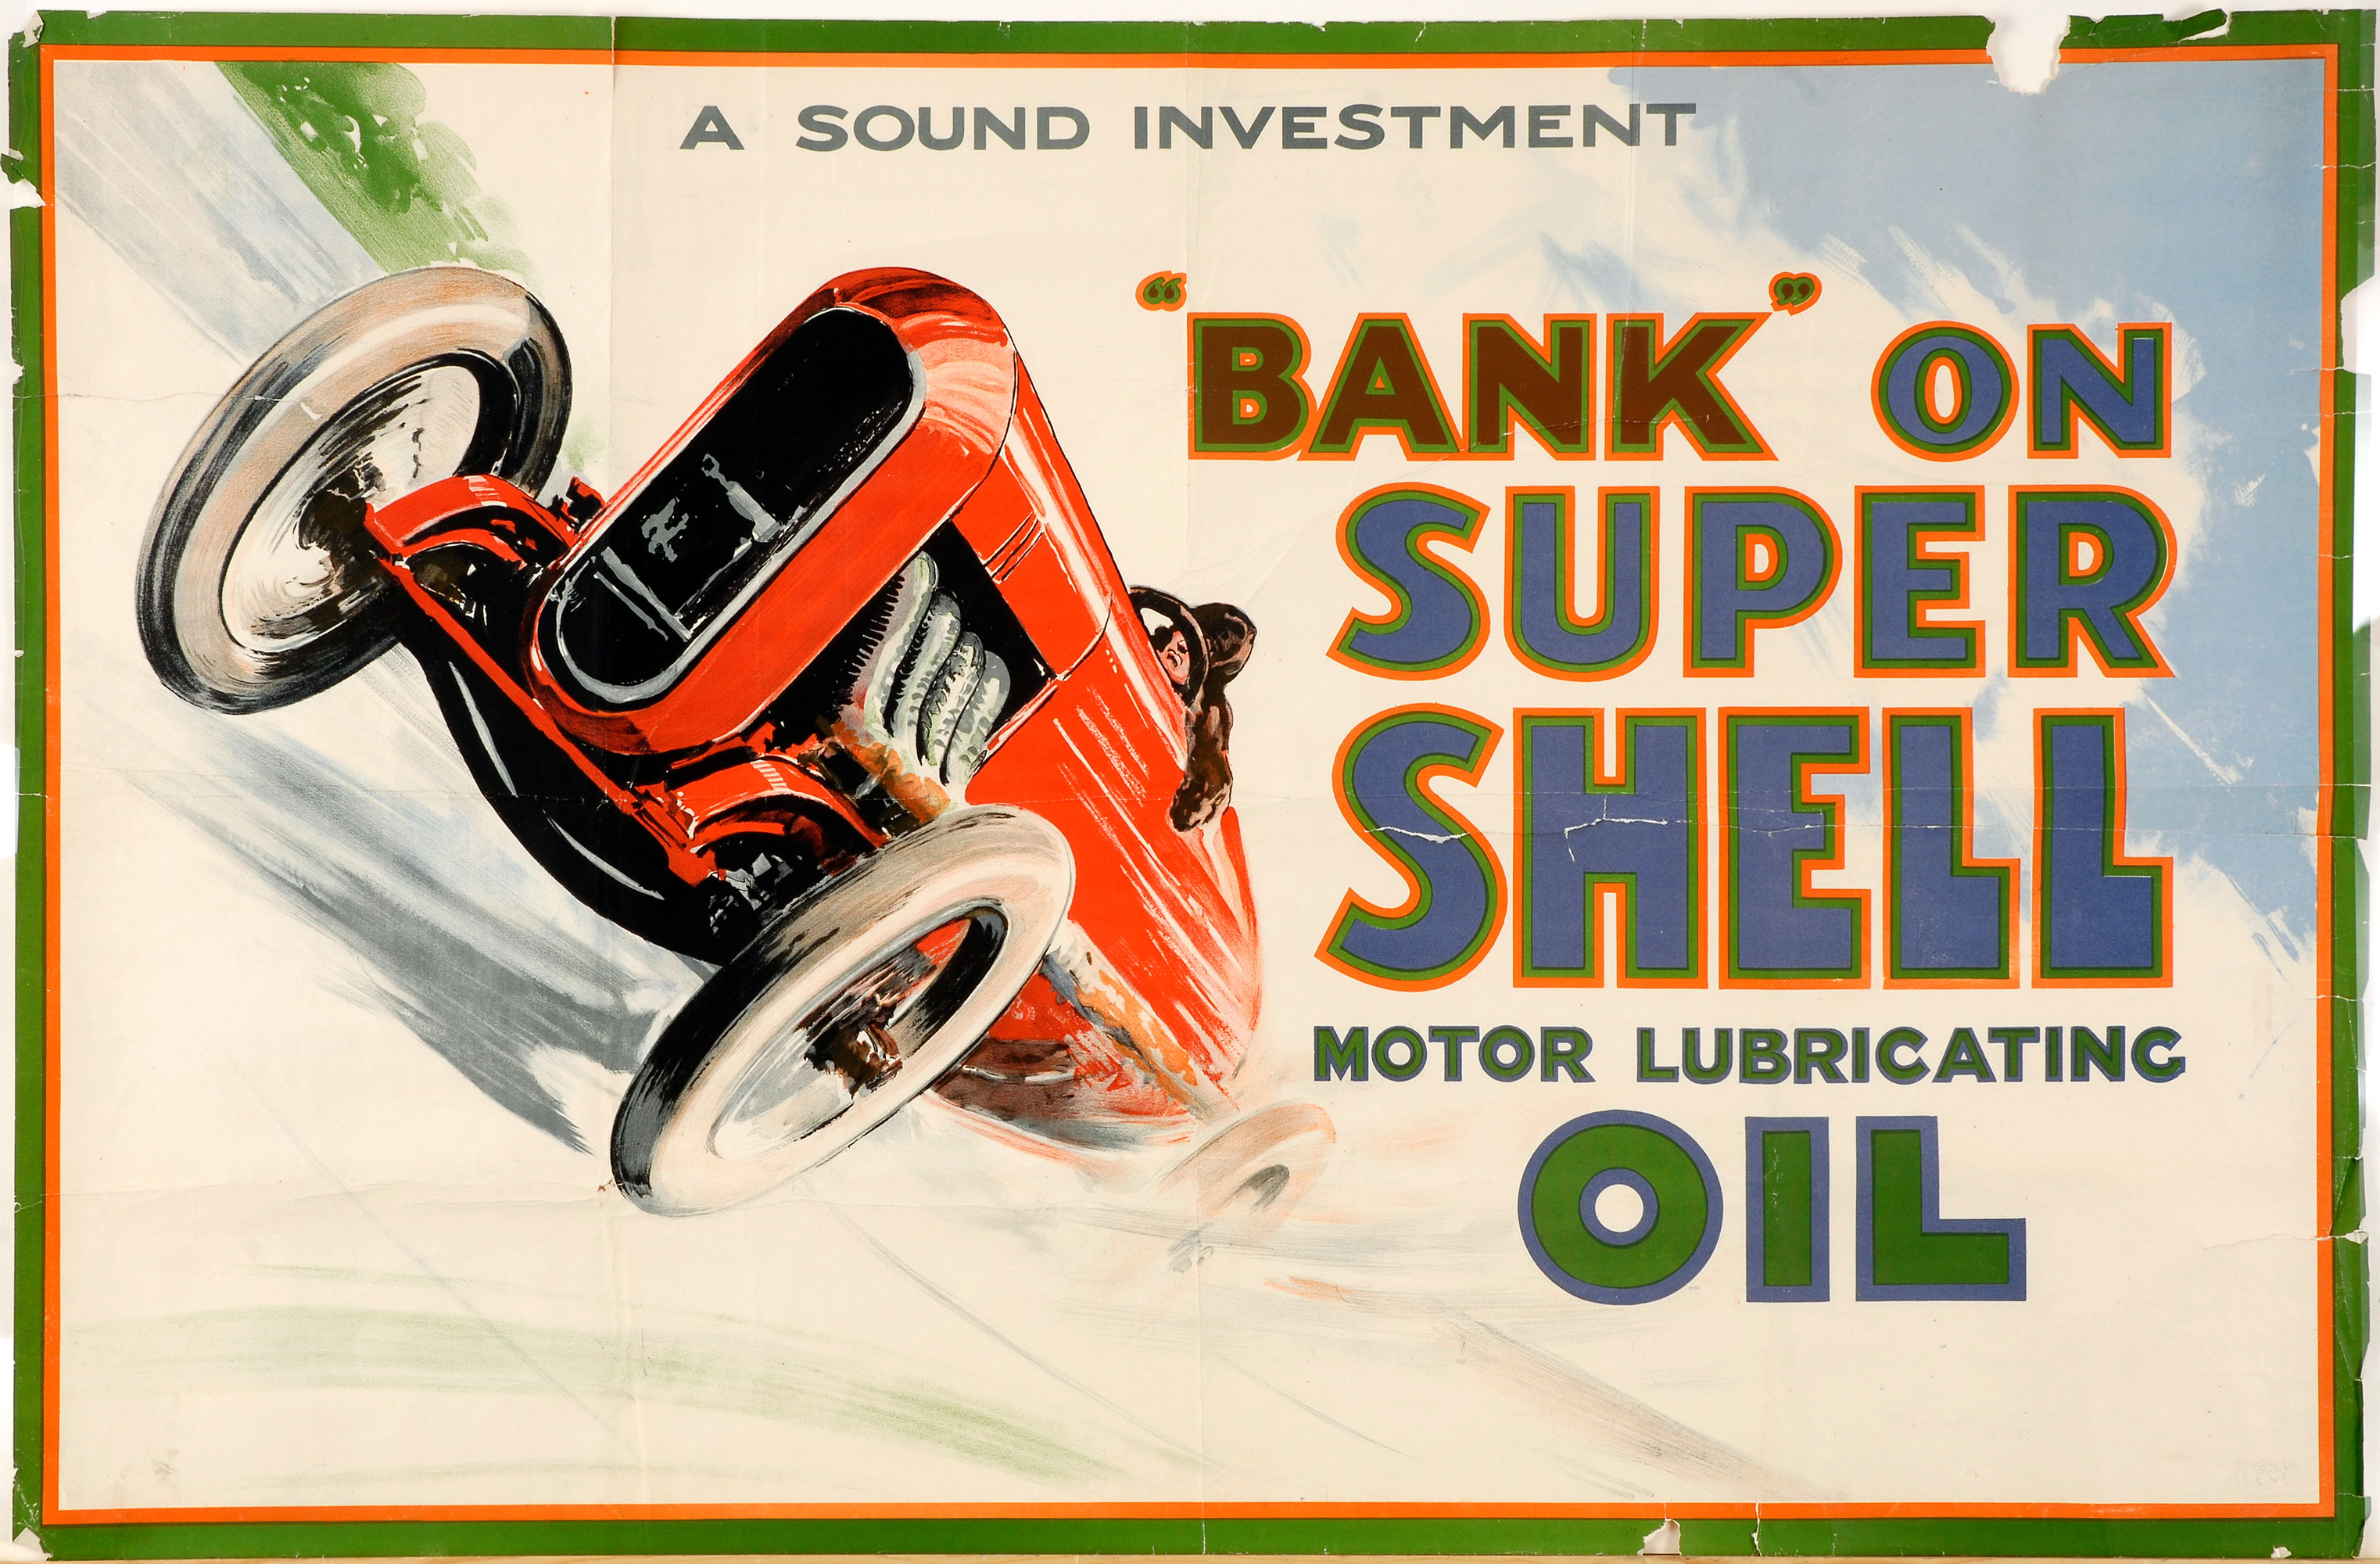 "Shell poster number 73, Bank on Shell Racing Car by Norman Keene. Painting of a man driving a red racing car, text reads; ""Bank on Super Shell Motor Lubricating Oil - A sound investment""."